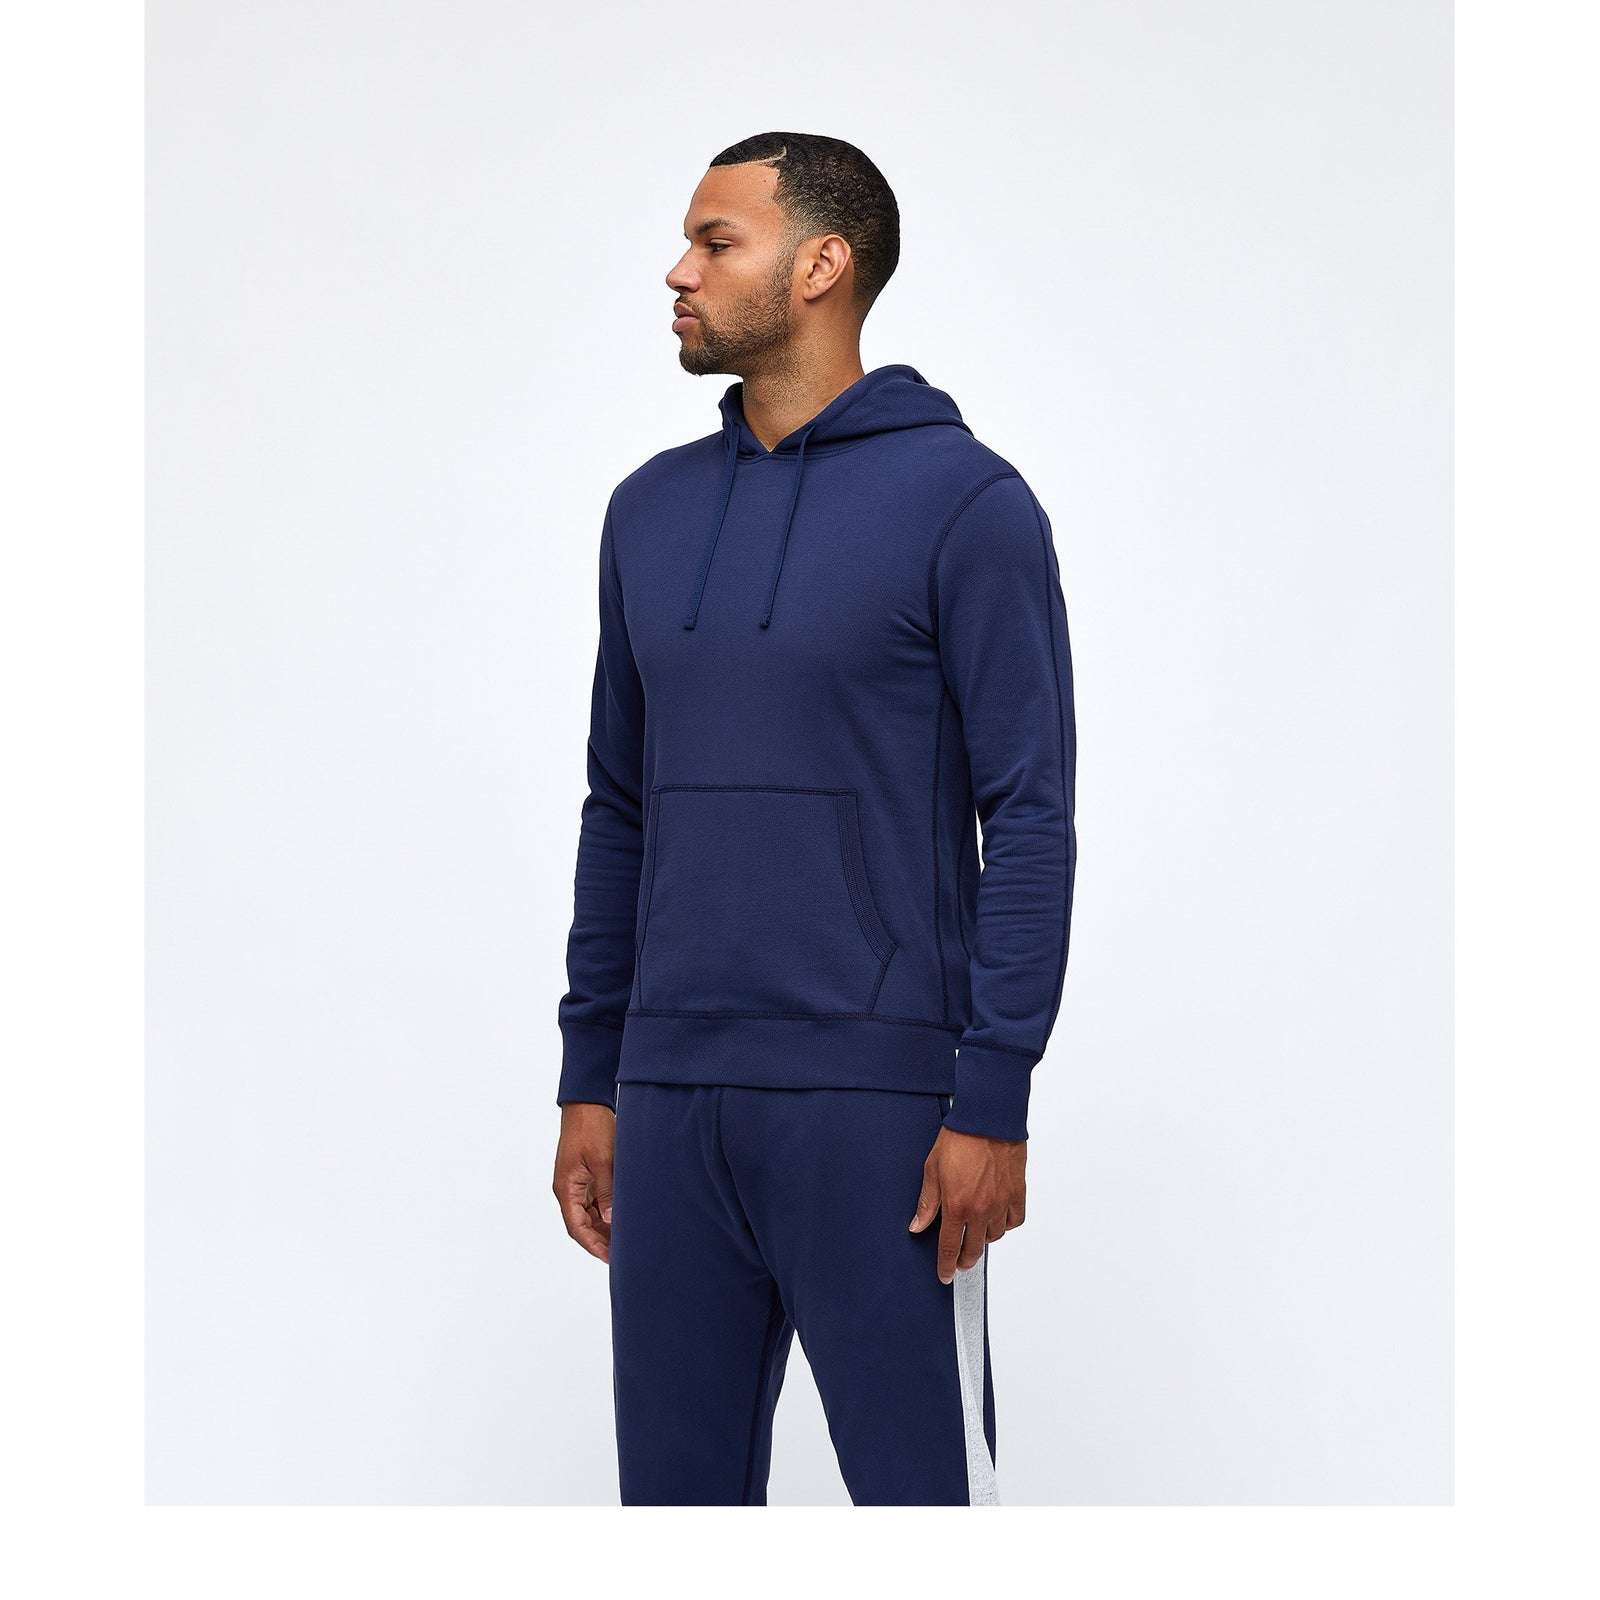 Light Wt Terry Pullover Hoodie - Blue